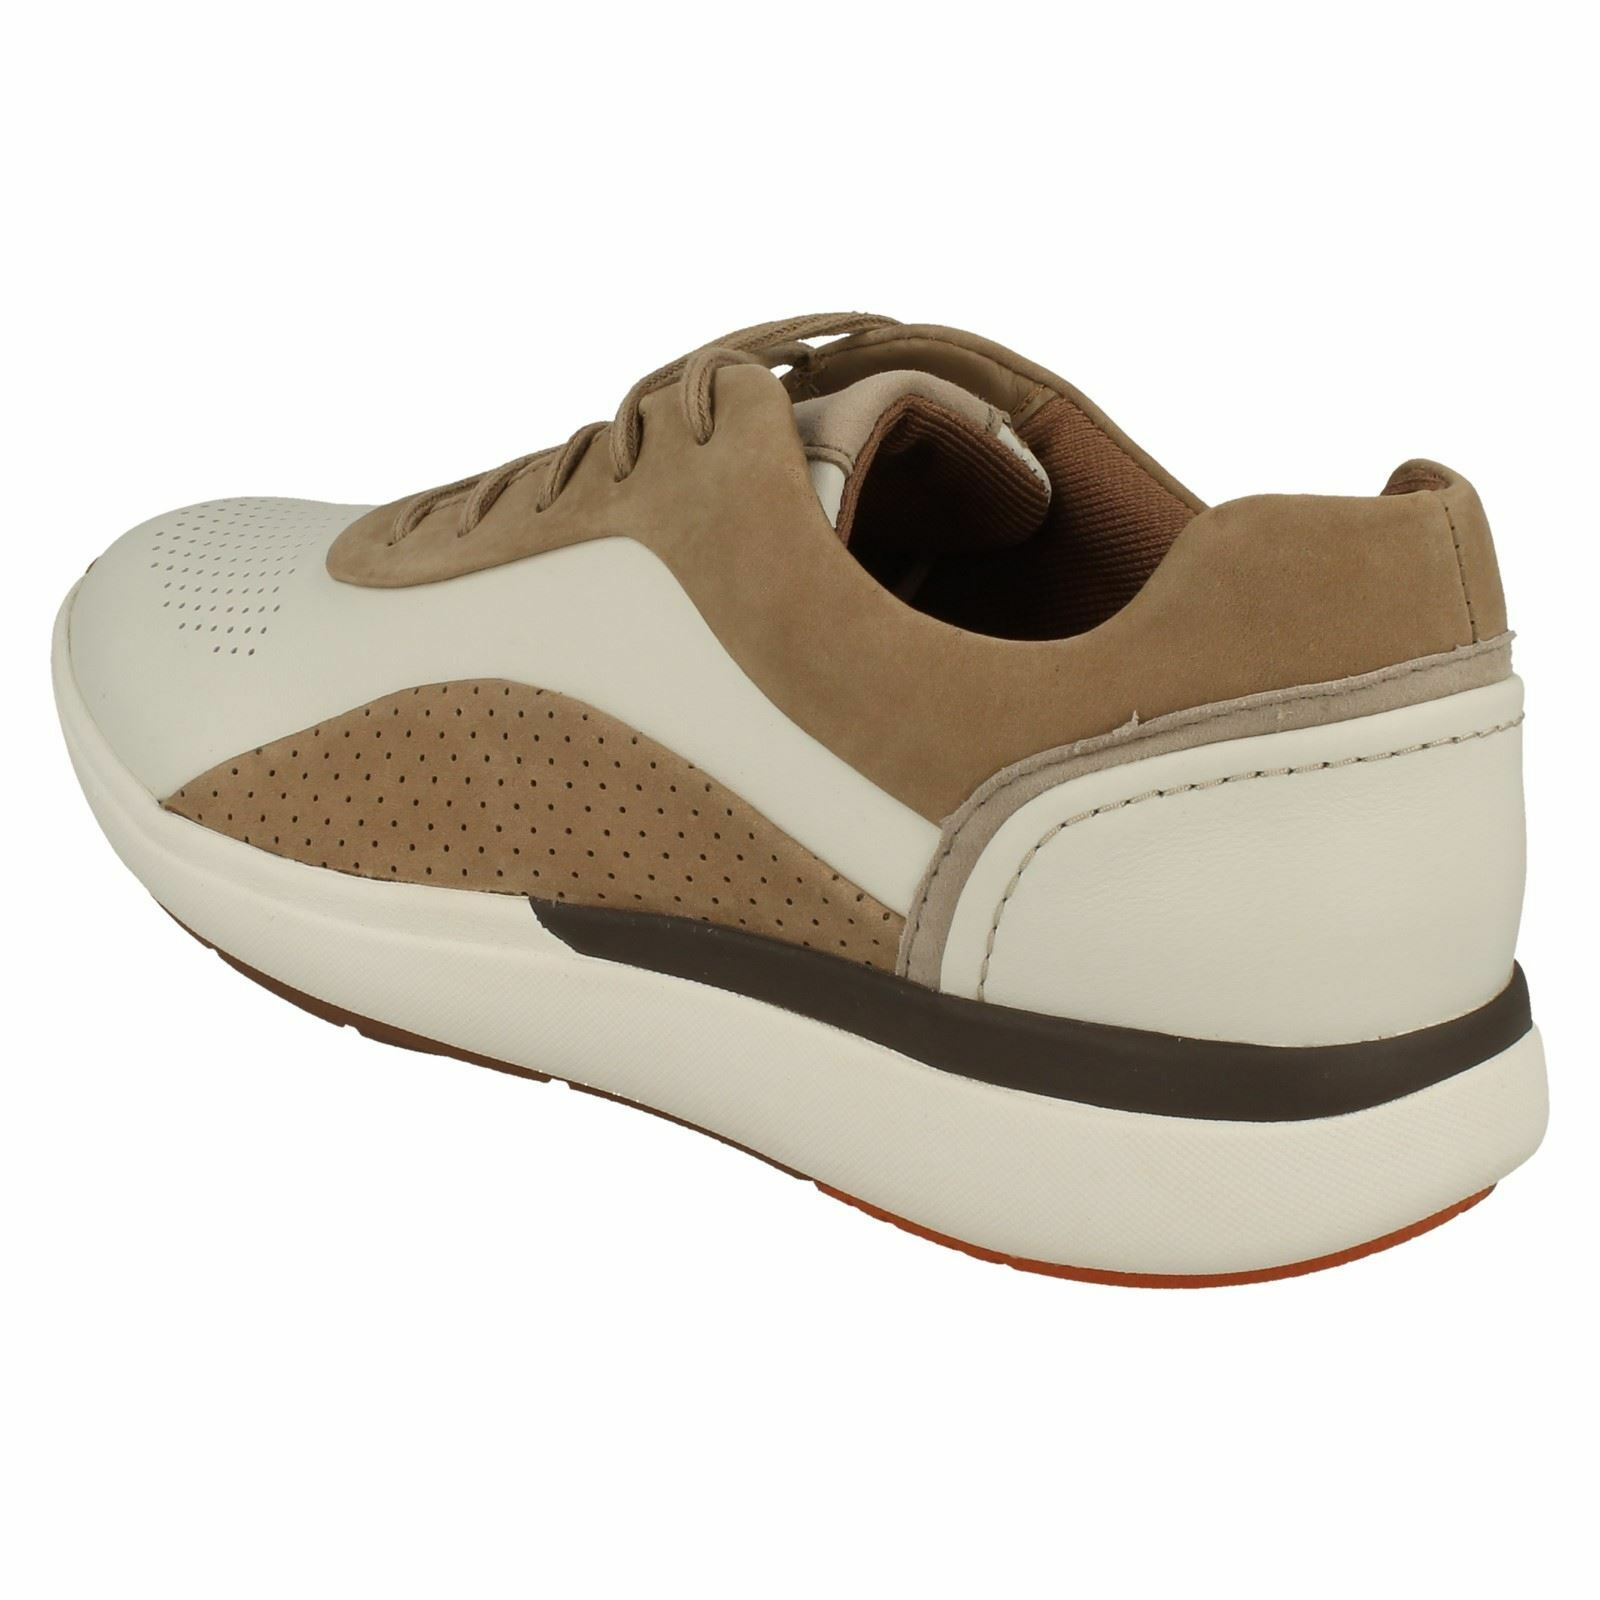 LADIES CLARKS UNSTRUCTUROT LACE UP CASUAL SPORTS TRAINERS Schuhe CRUISE UN CRUISE Schuhe LACE 95397a